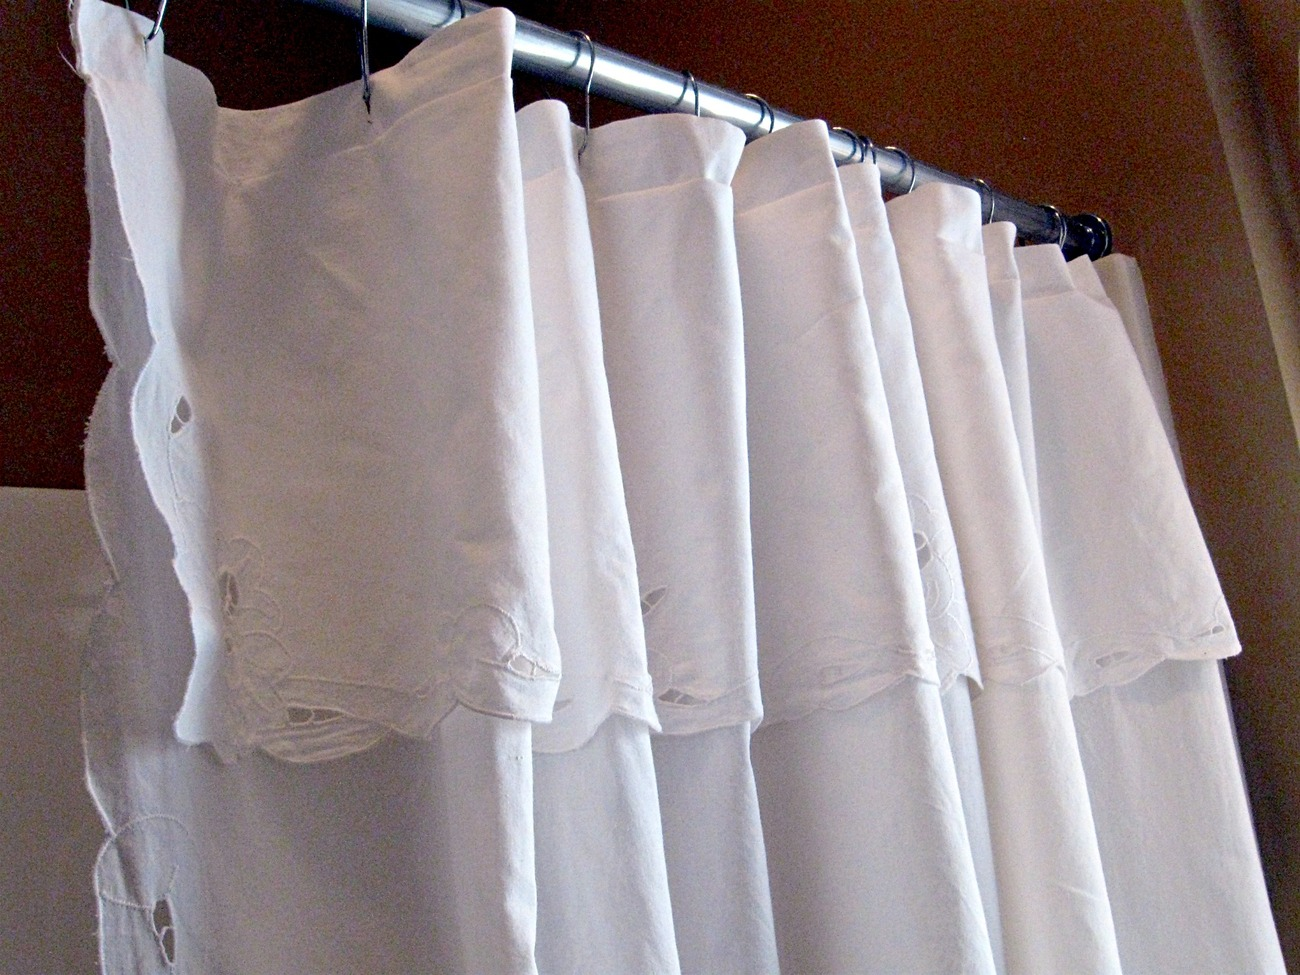 Shower Curtains: Pretty White Cotton Cutwork Lace Shower Curtain.